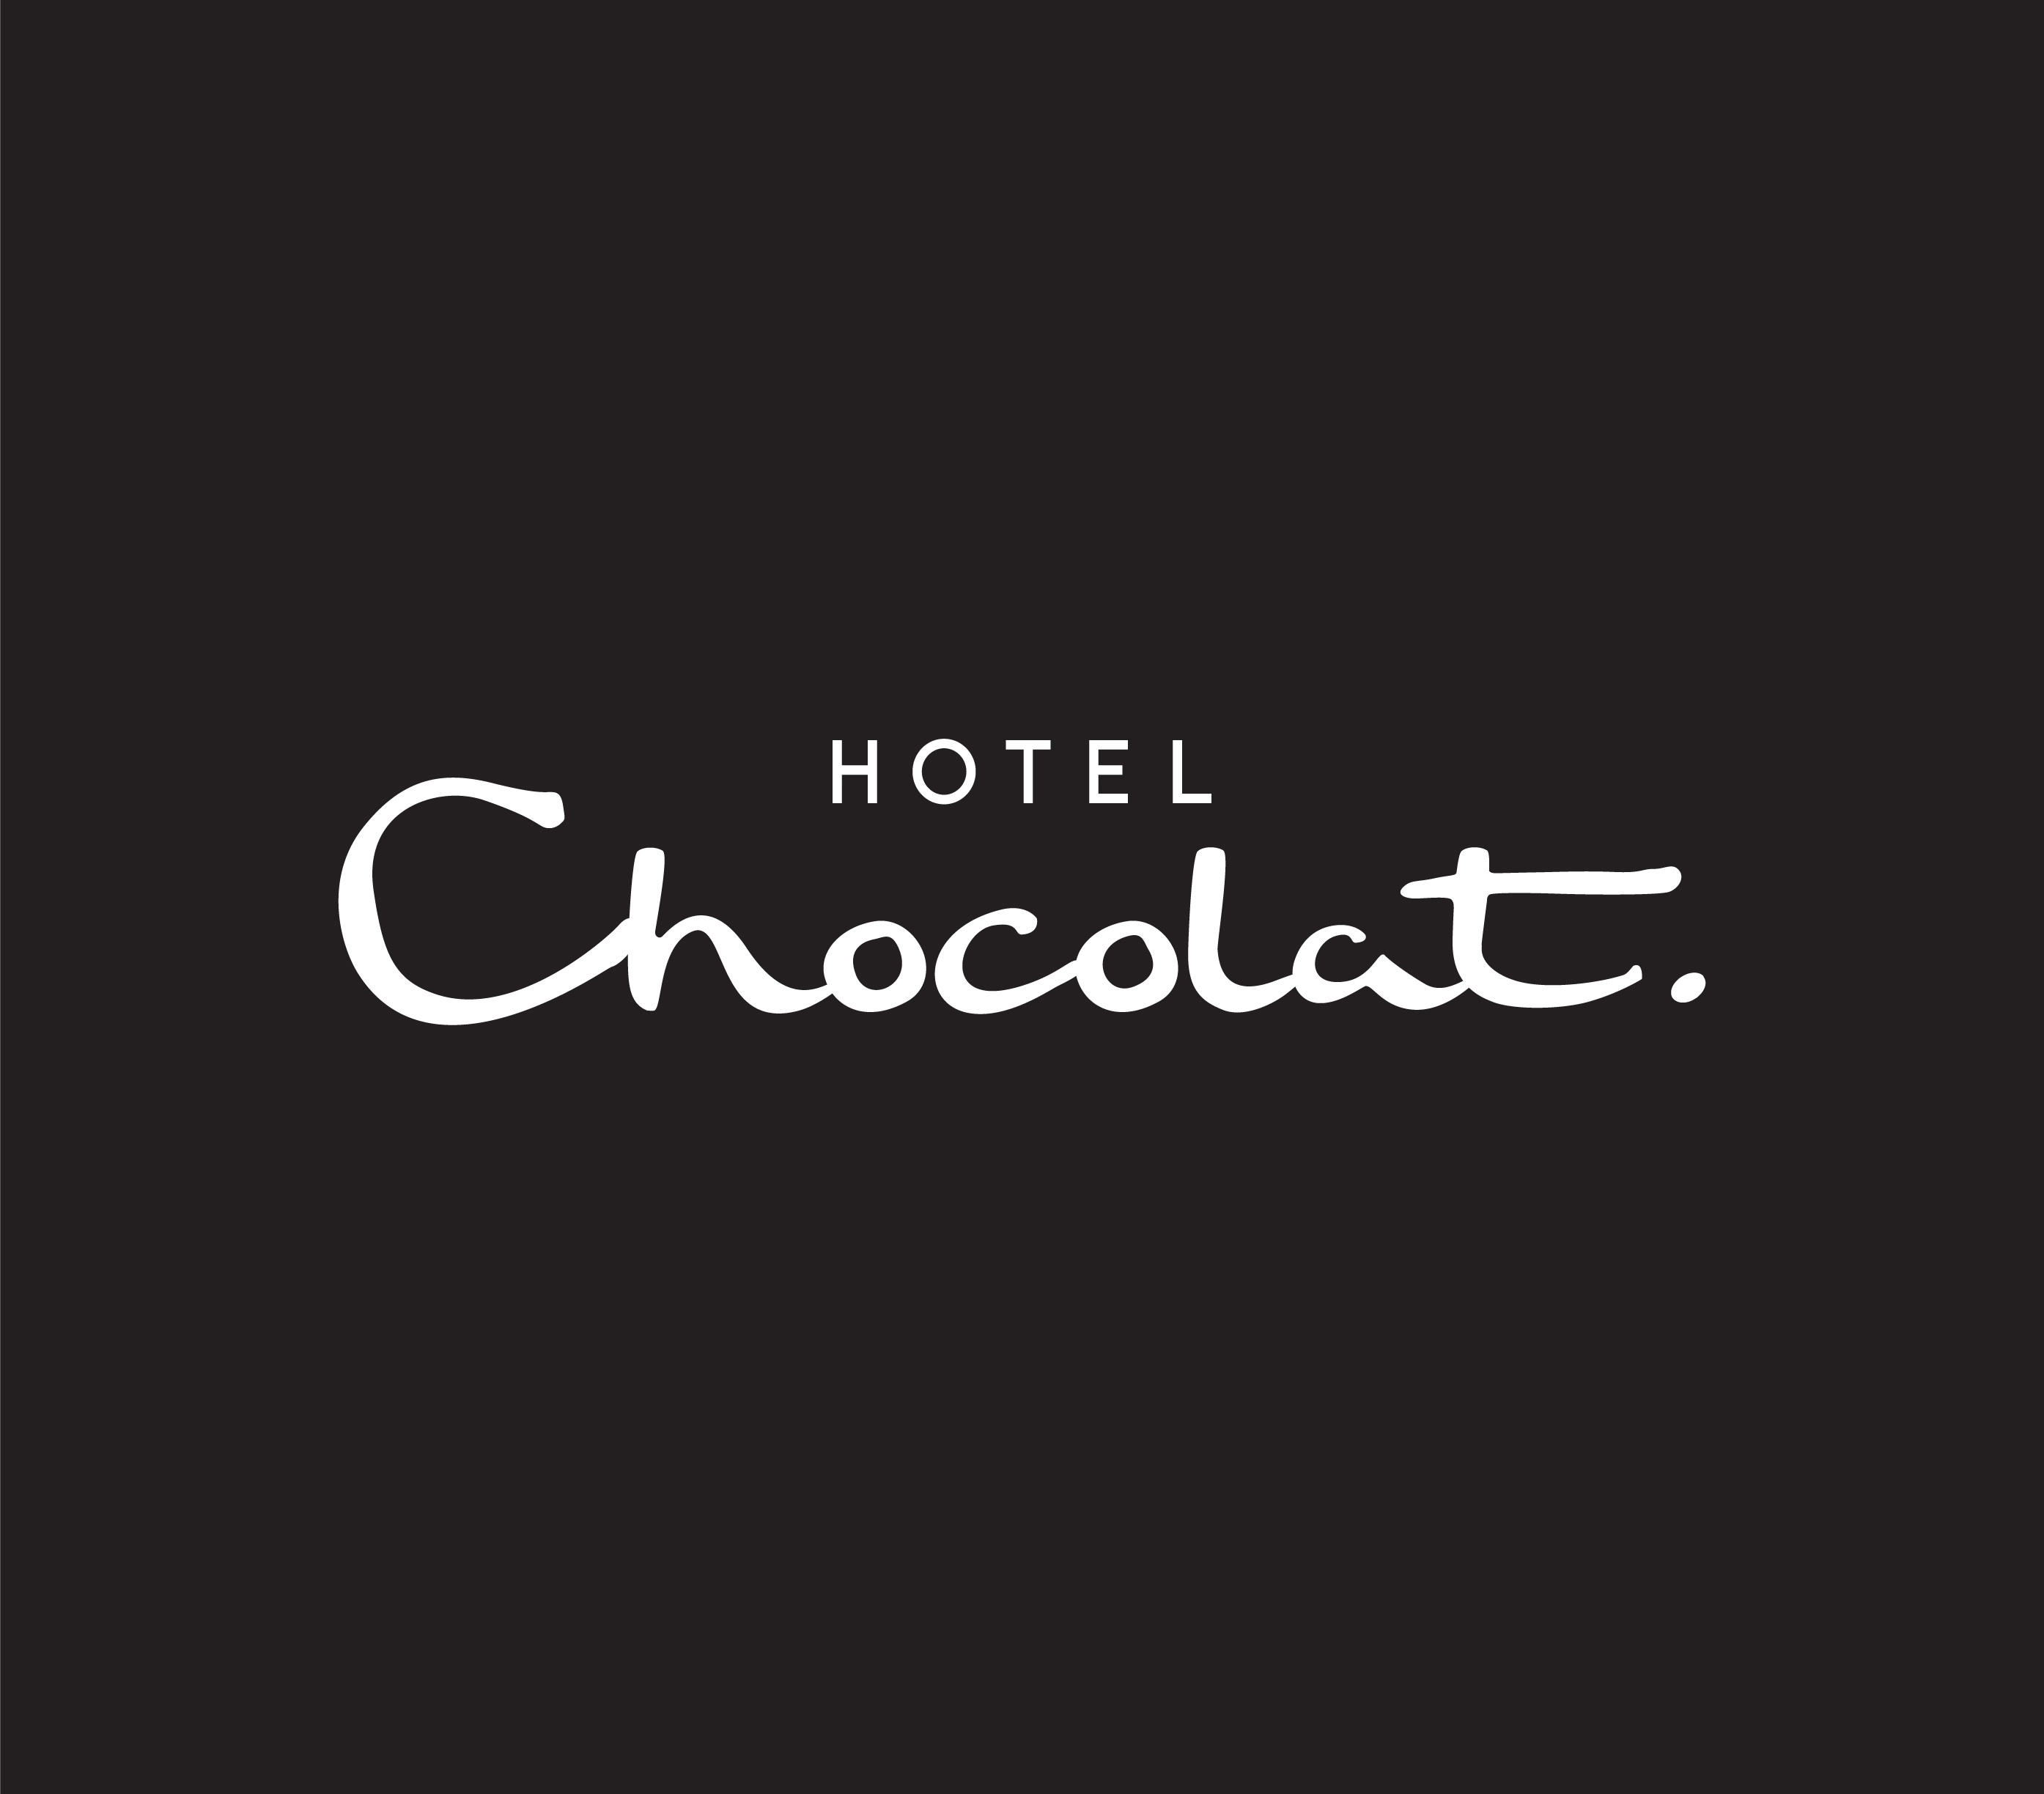 Hotel Chocolat Expands To The US And Begins Boston Newbury